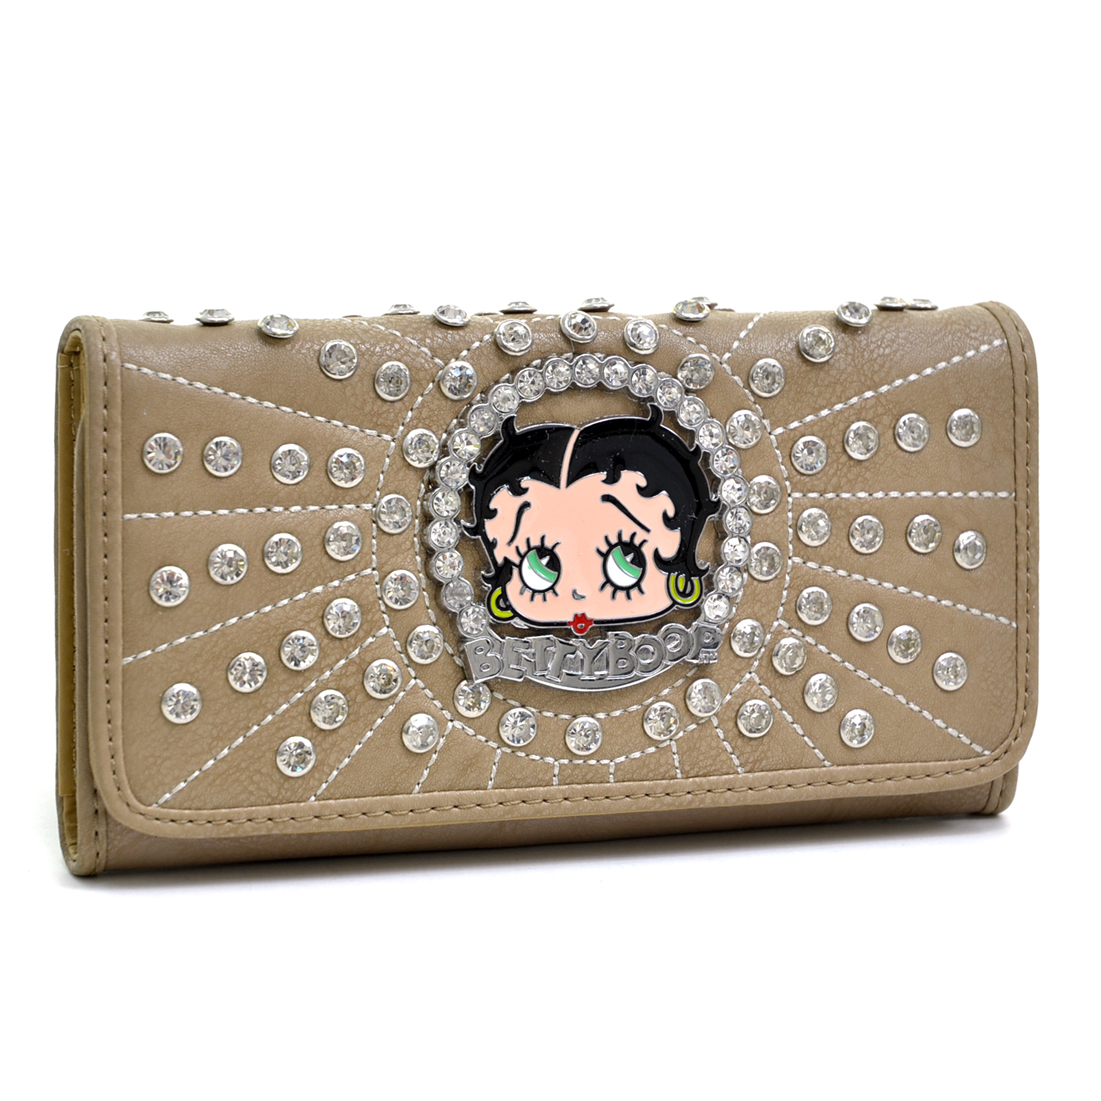 Betty Boop® Rhinestone Decor Checkbook Wallet with Stitches - Taupe